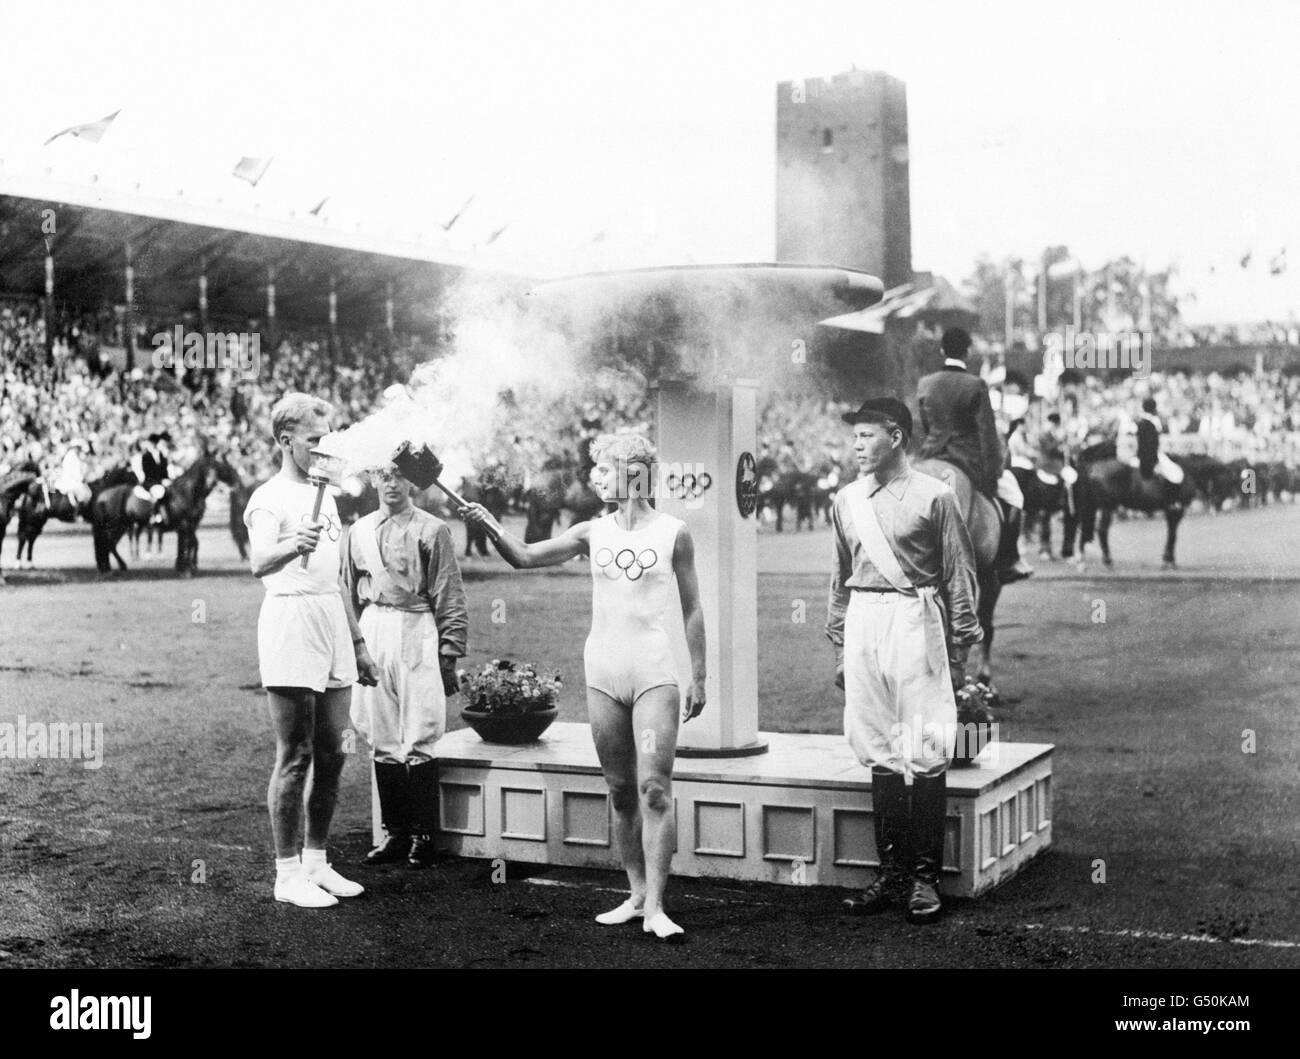 1956 Olympics Stock Photos Amp 1956 Olympics Stock Images